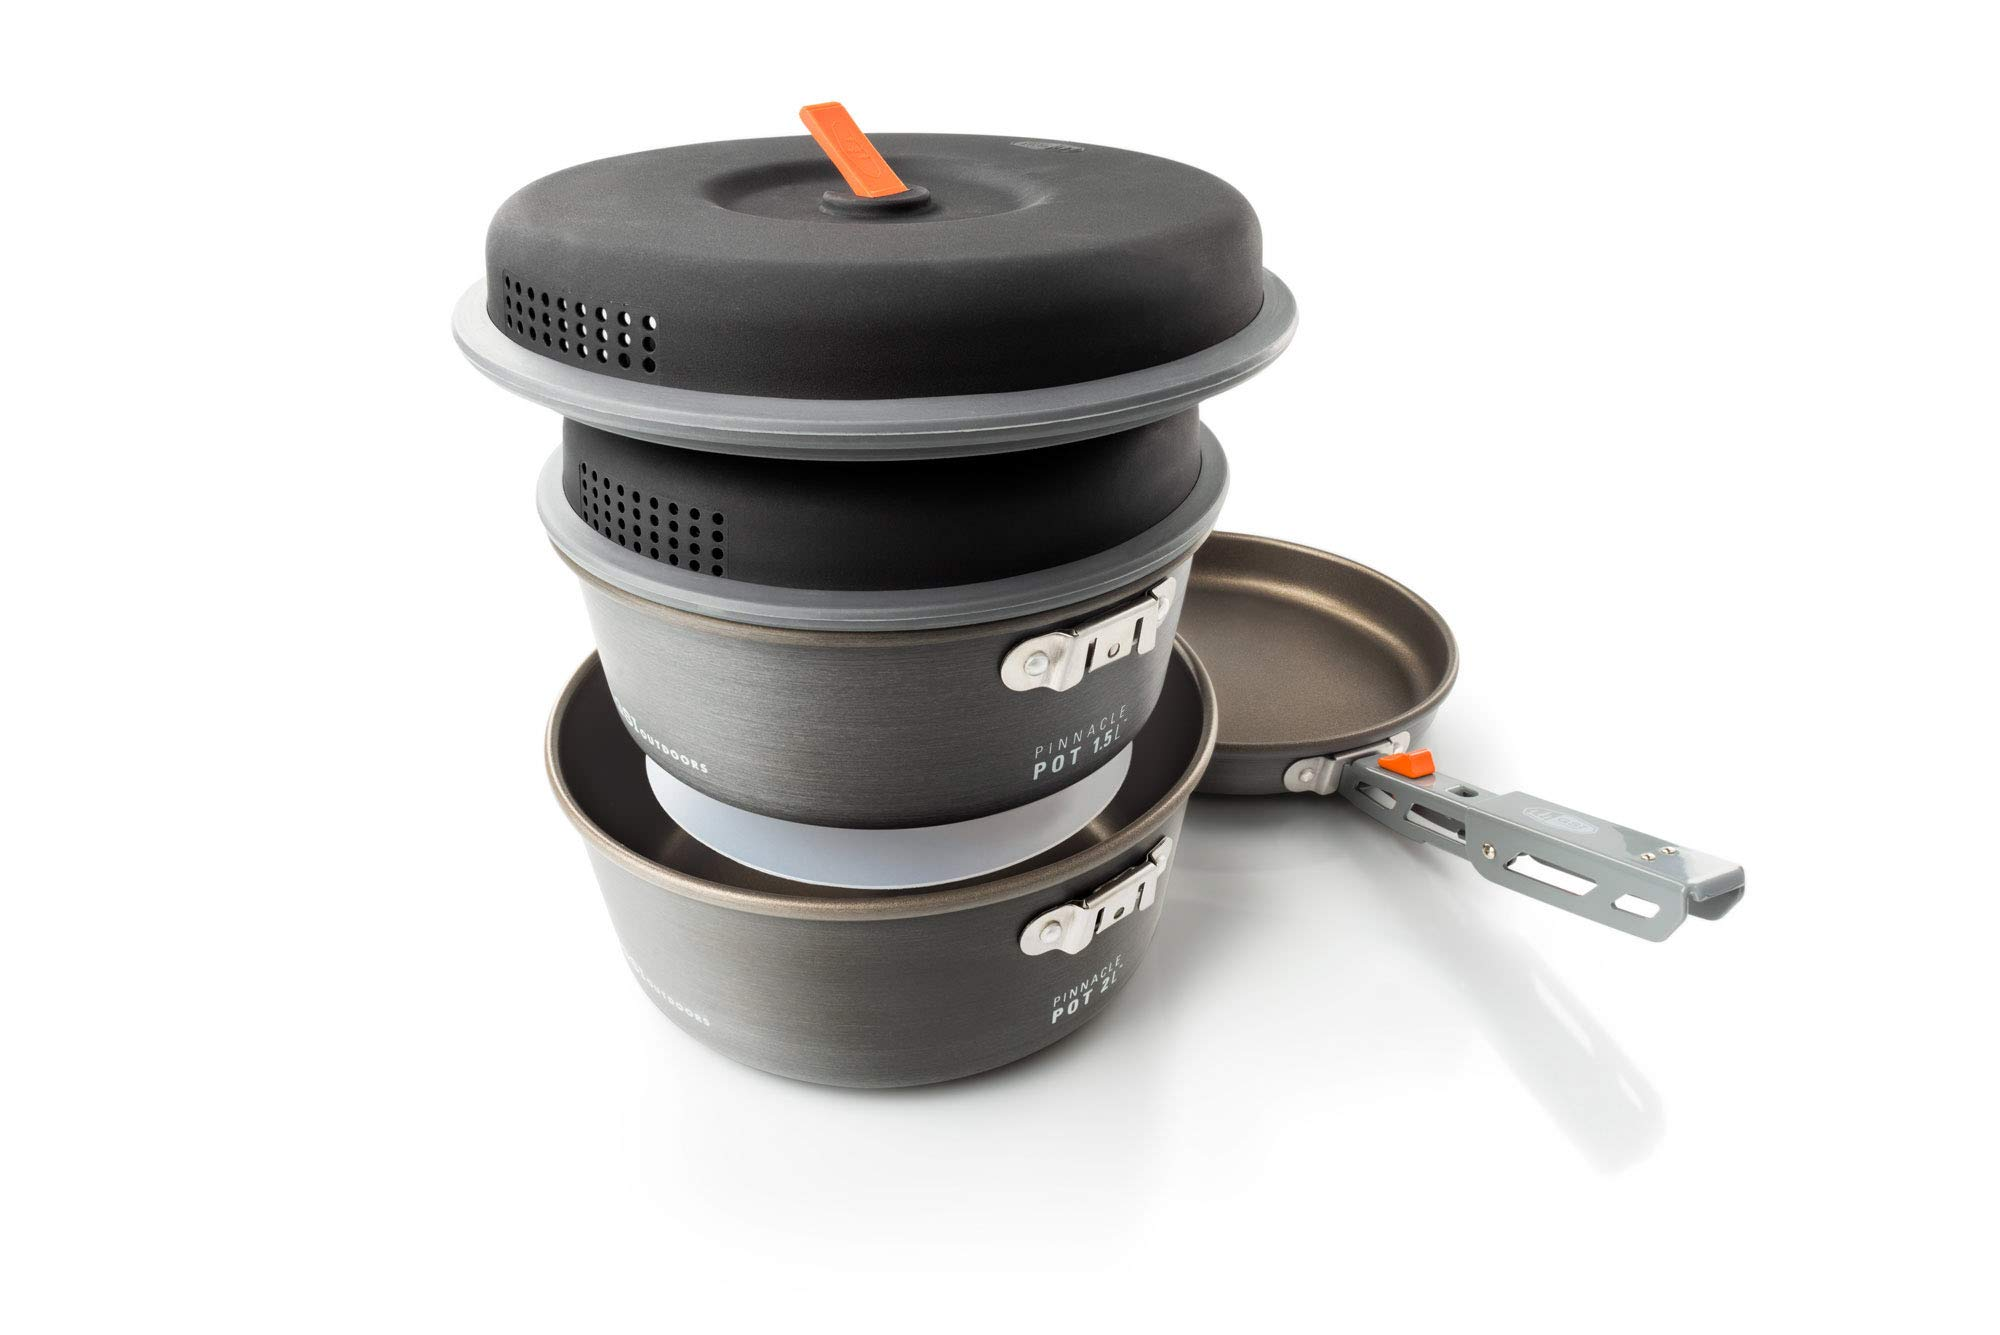 GSI Outdoors - Pinnacle Base Camper, Camping Cook Set, Small, Superior Backcountry Cookware Since 1985 by GSI Outdoors